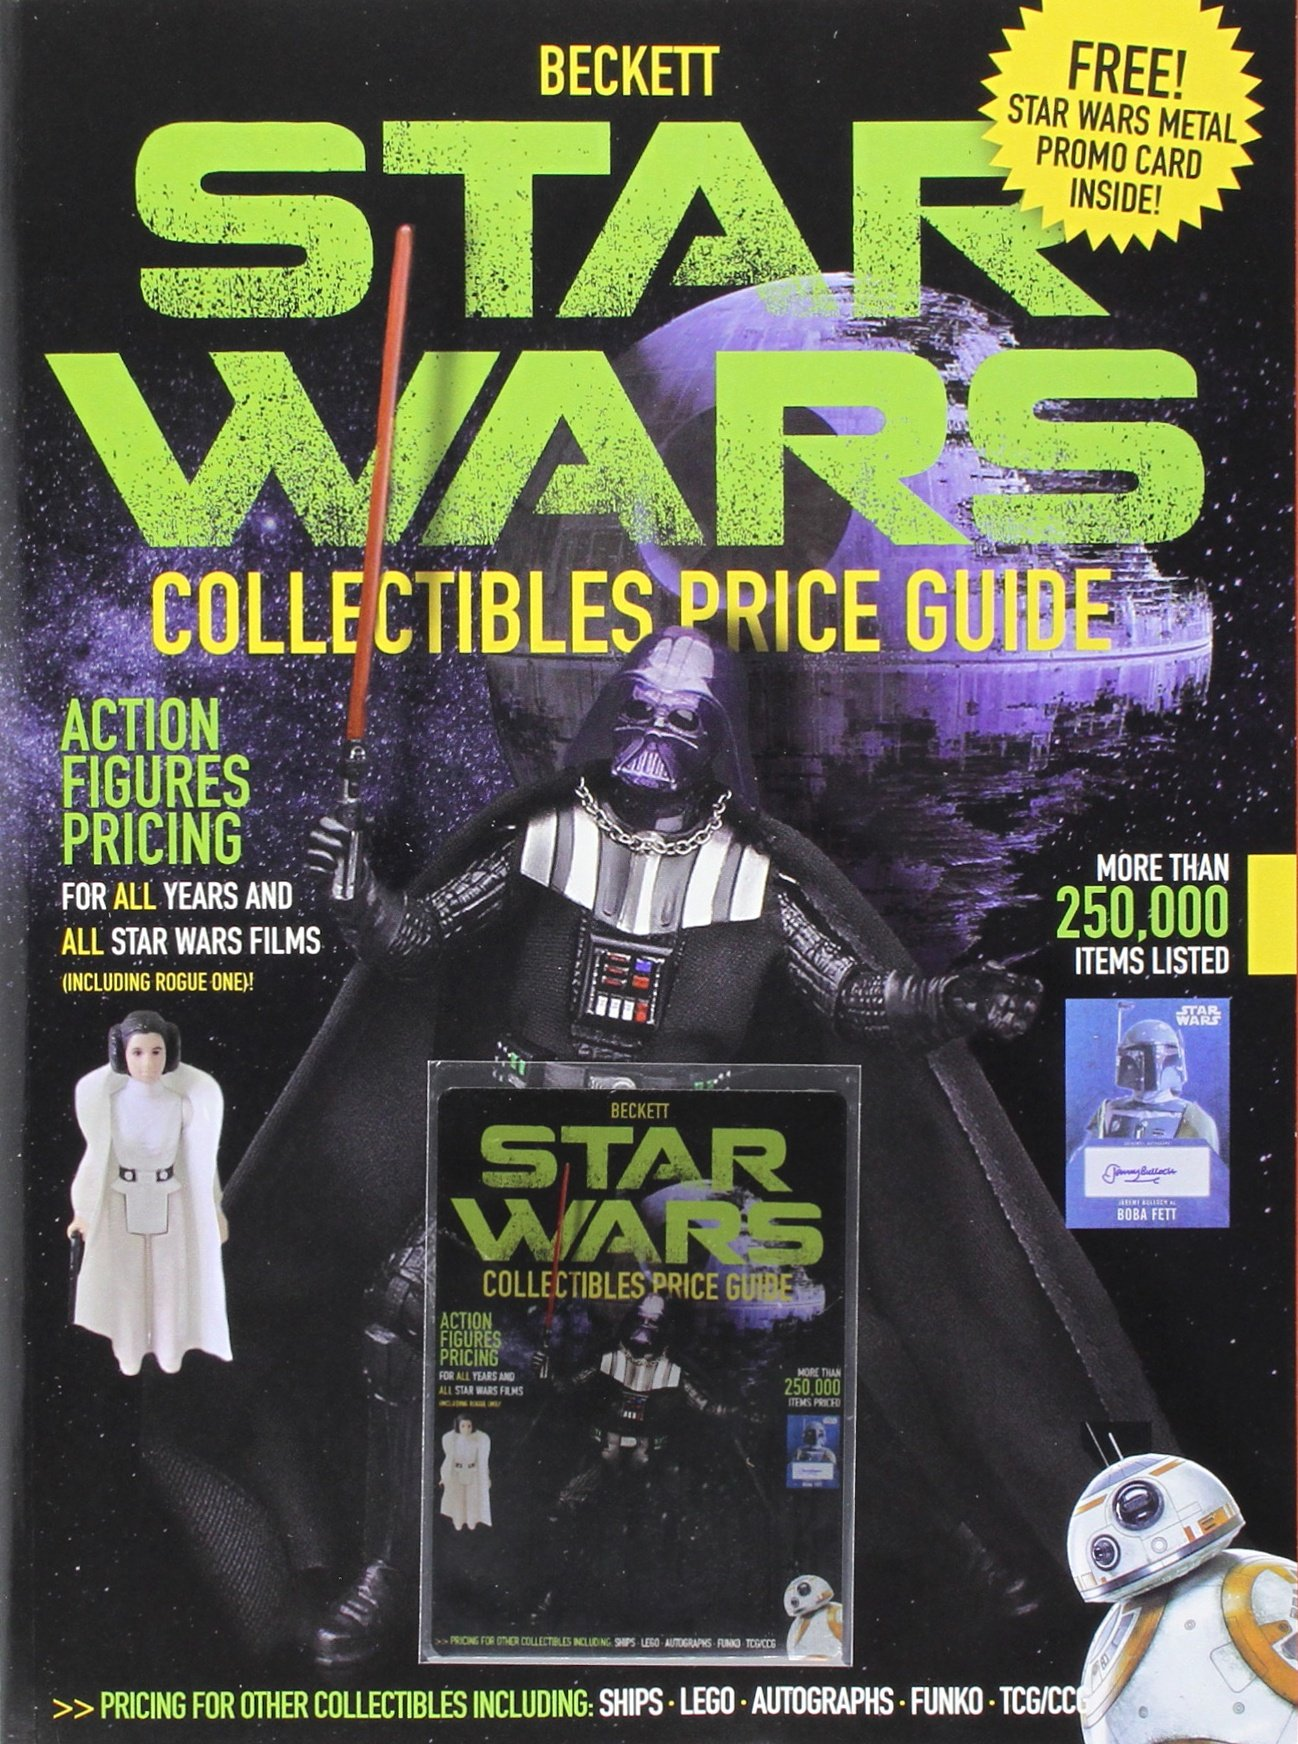 Beckett's Star Wars Collectibles Price Guide 2017